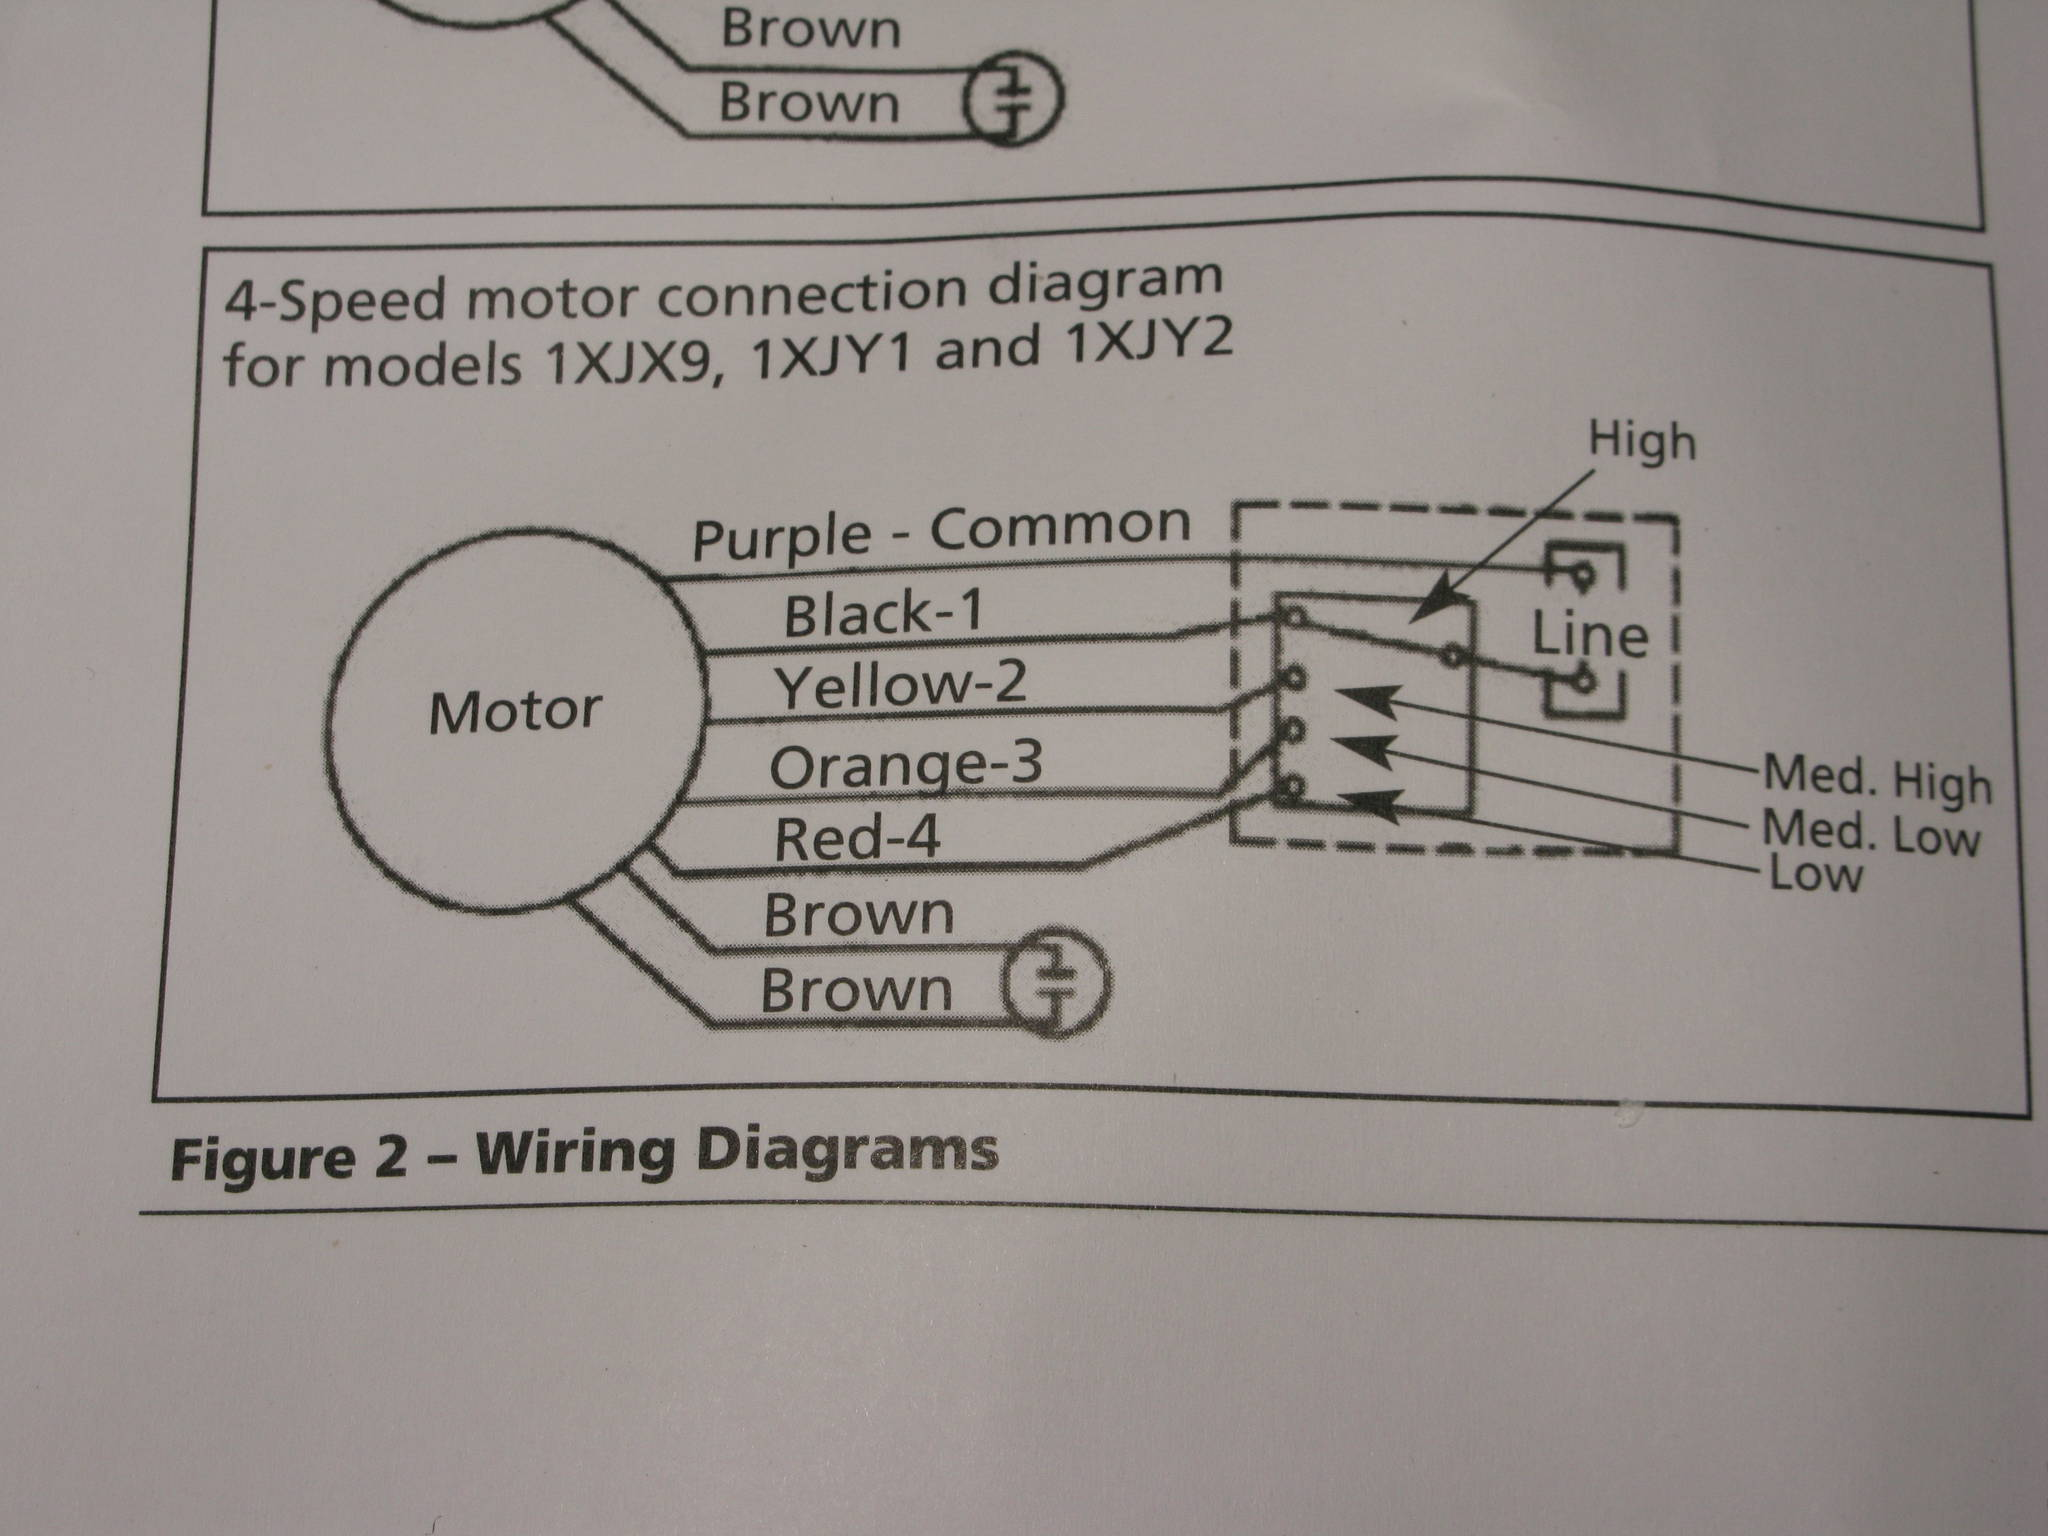 022483553 IMG_3678 1xjy1 dayton motor wiring flowhood mushroom cultivation dayton blower motor wiring diagram at gsmx.co